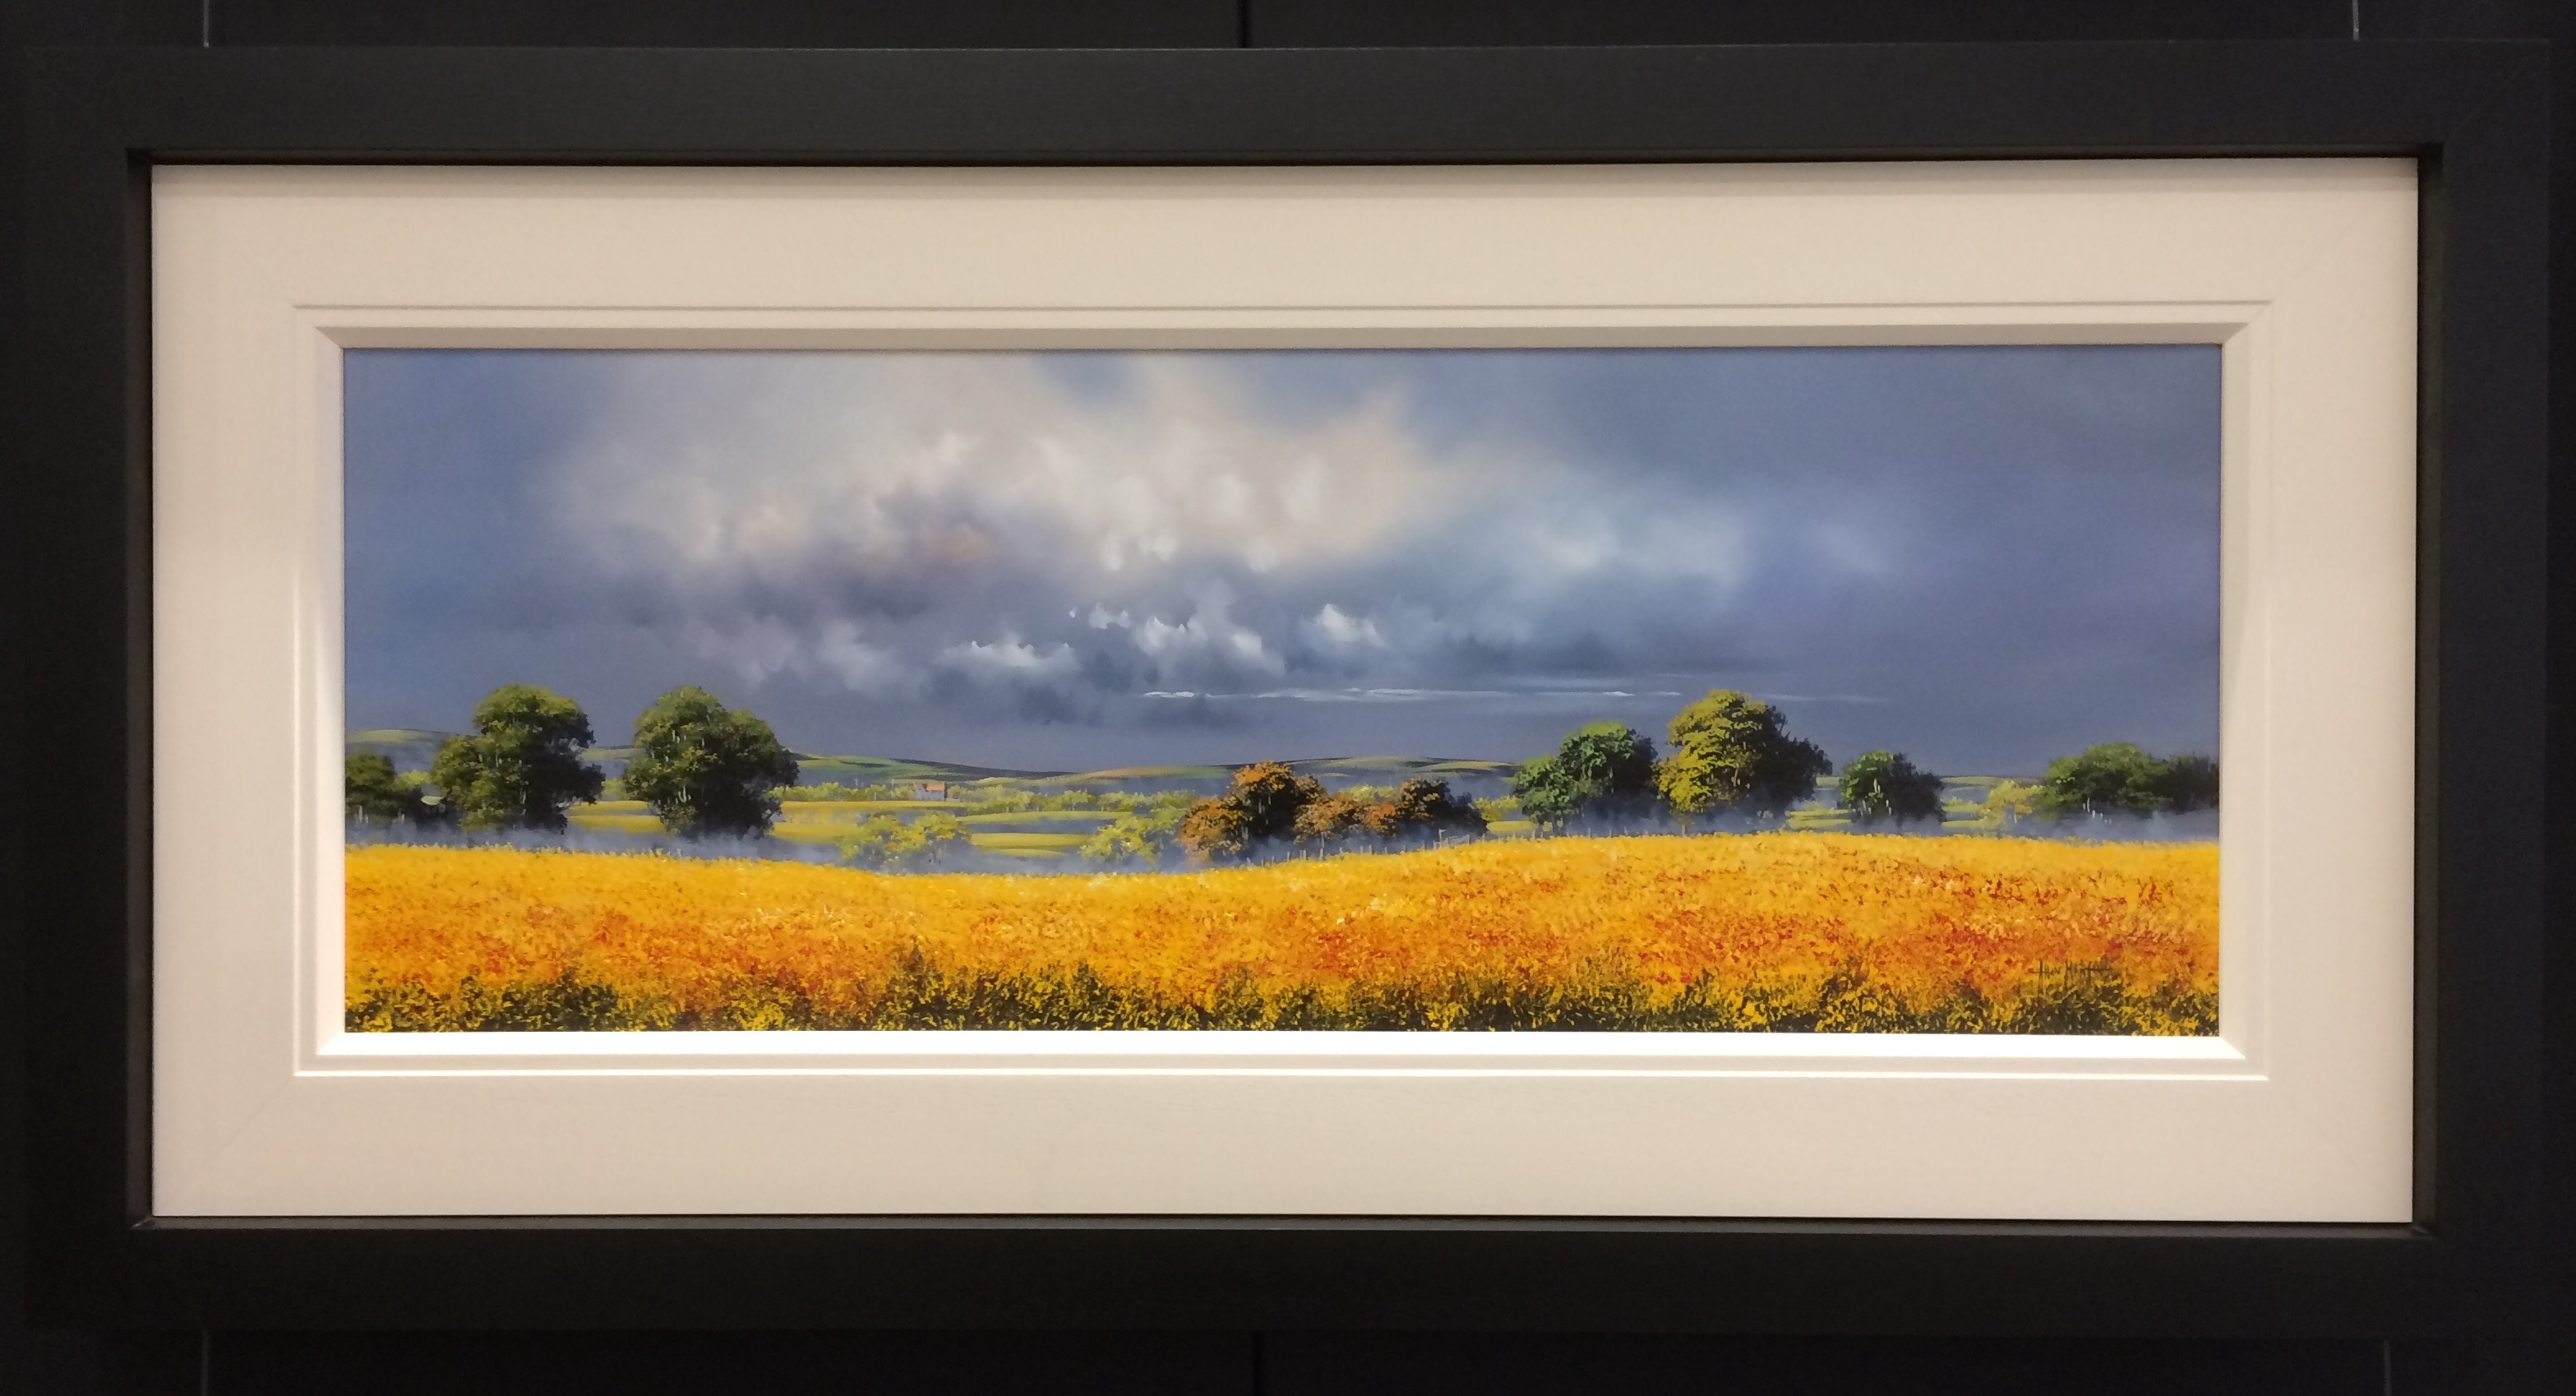 Landscape Yellow 40 x 15 by Allan Morgan